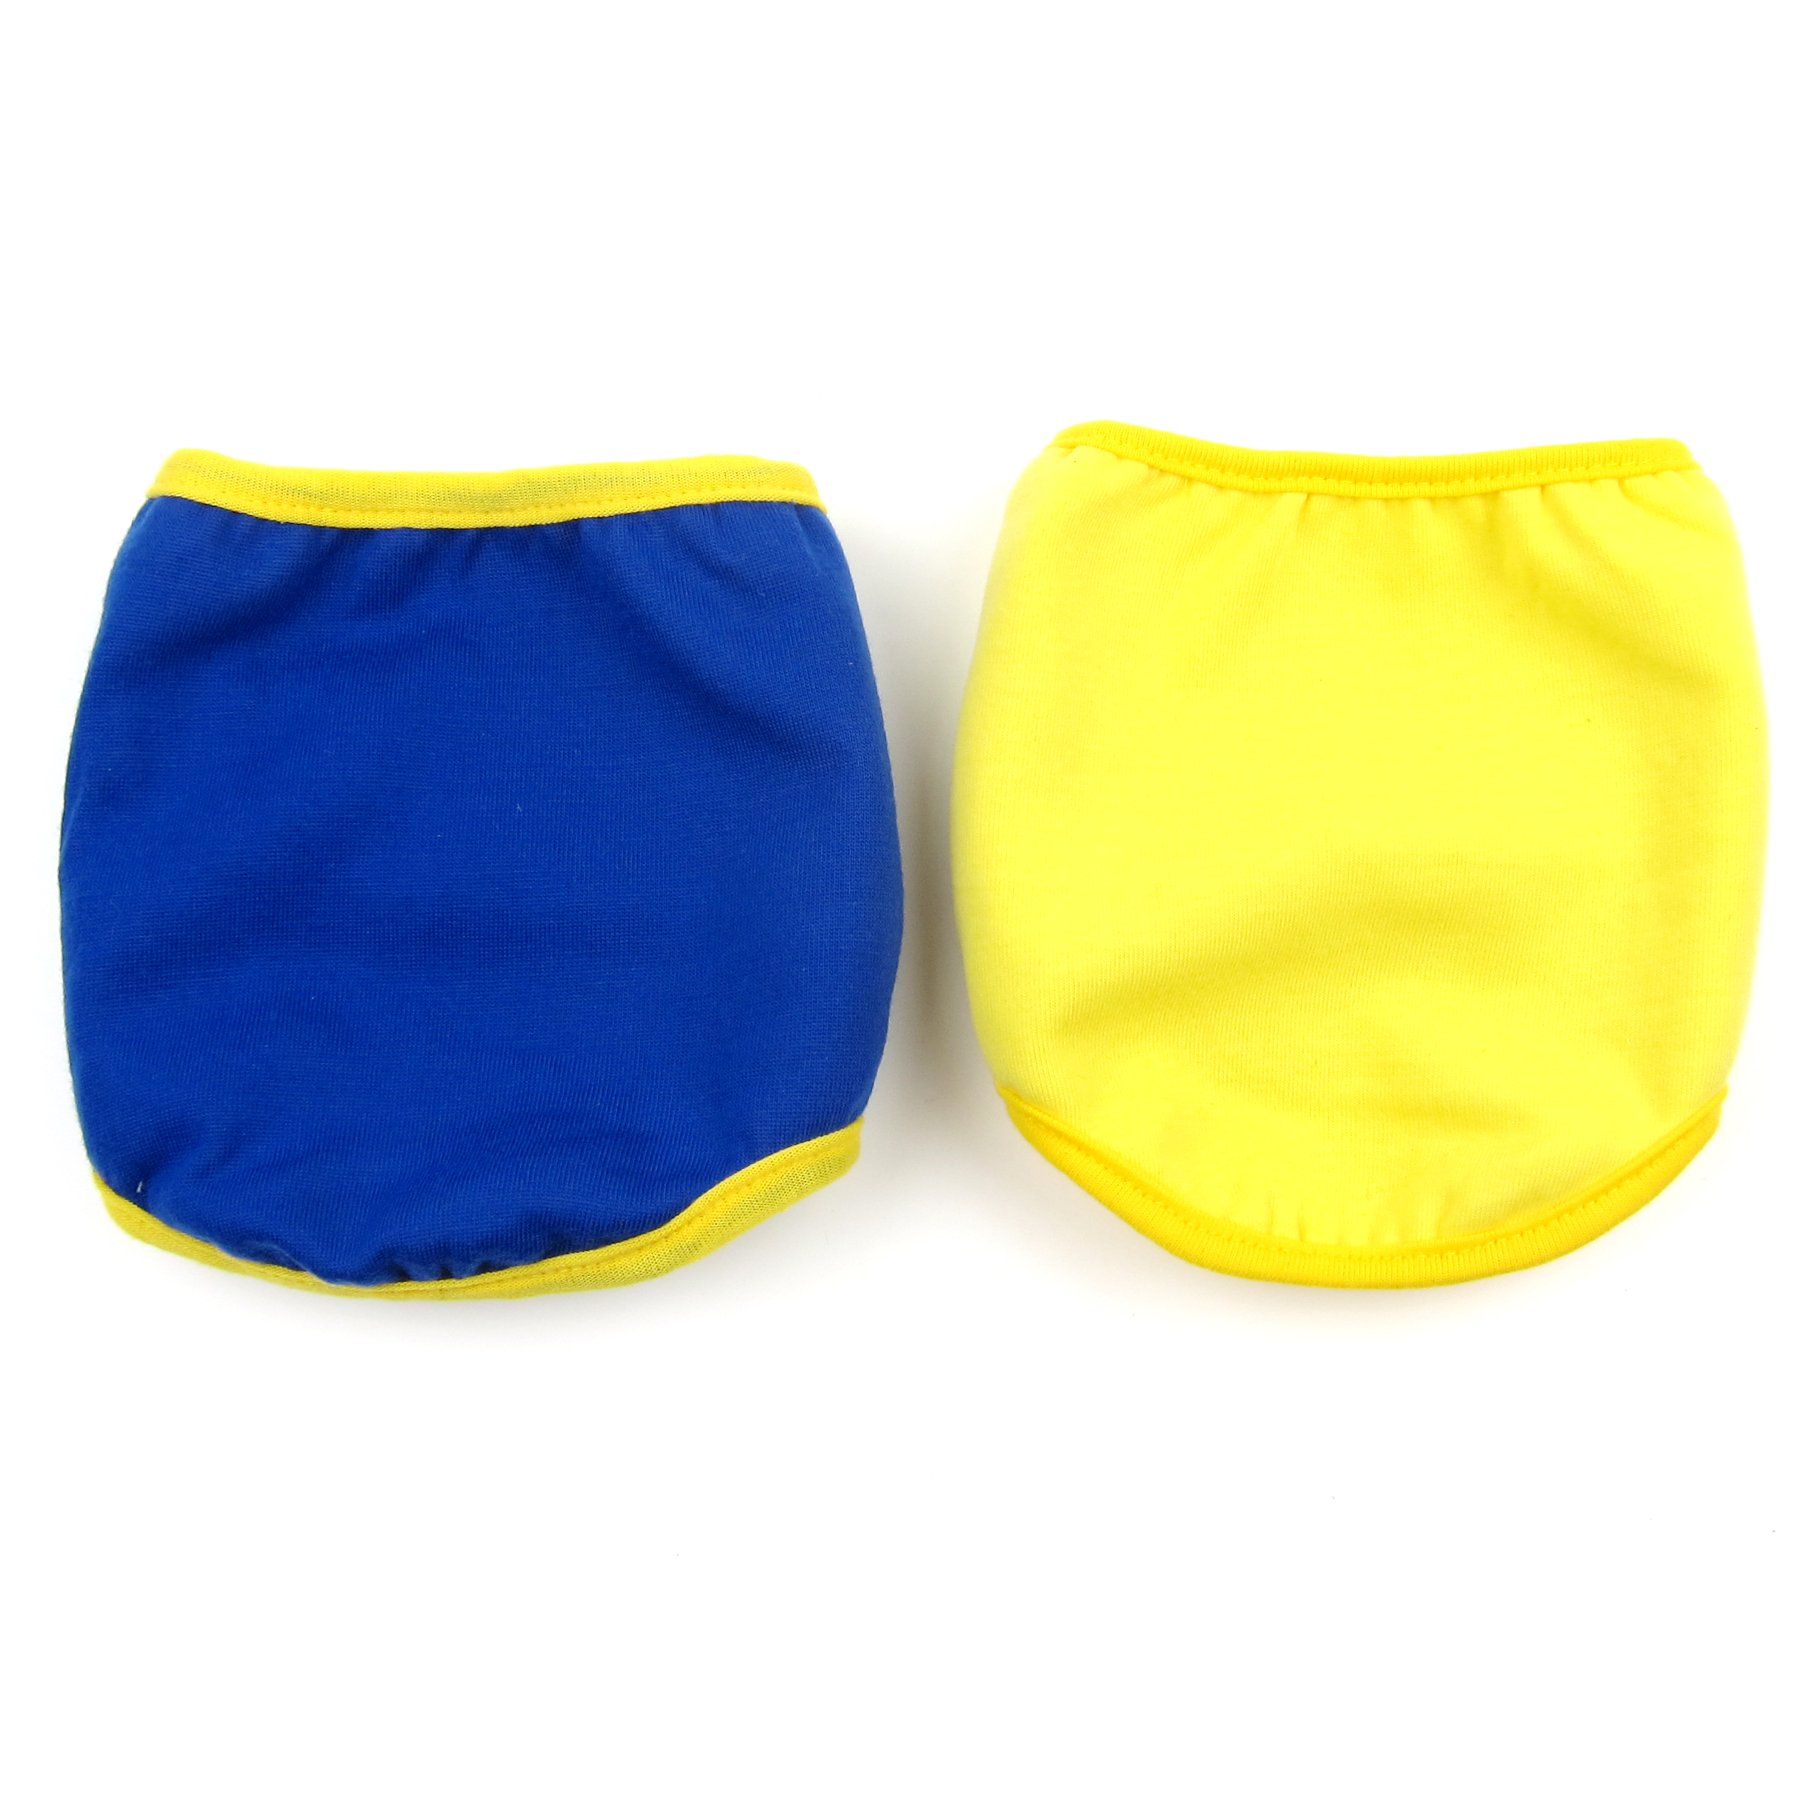 Alfie Pet by Petoga Couture - Rafael Belly Band 2-Piece Set (for Boy Dogs) - Color: Navy Yellow, Size: Large by Alfie (Image #5)